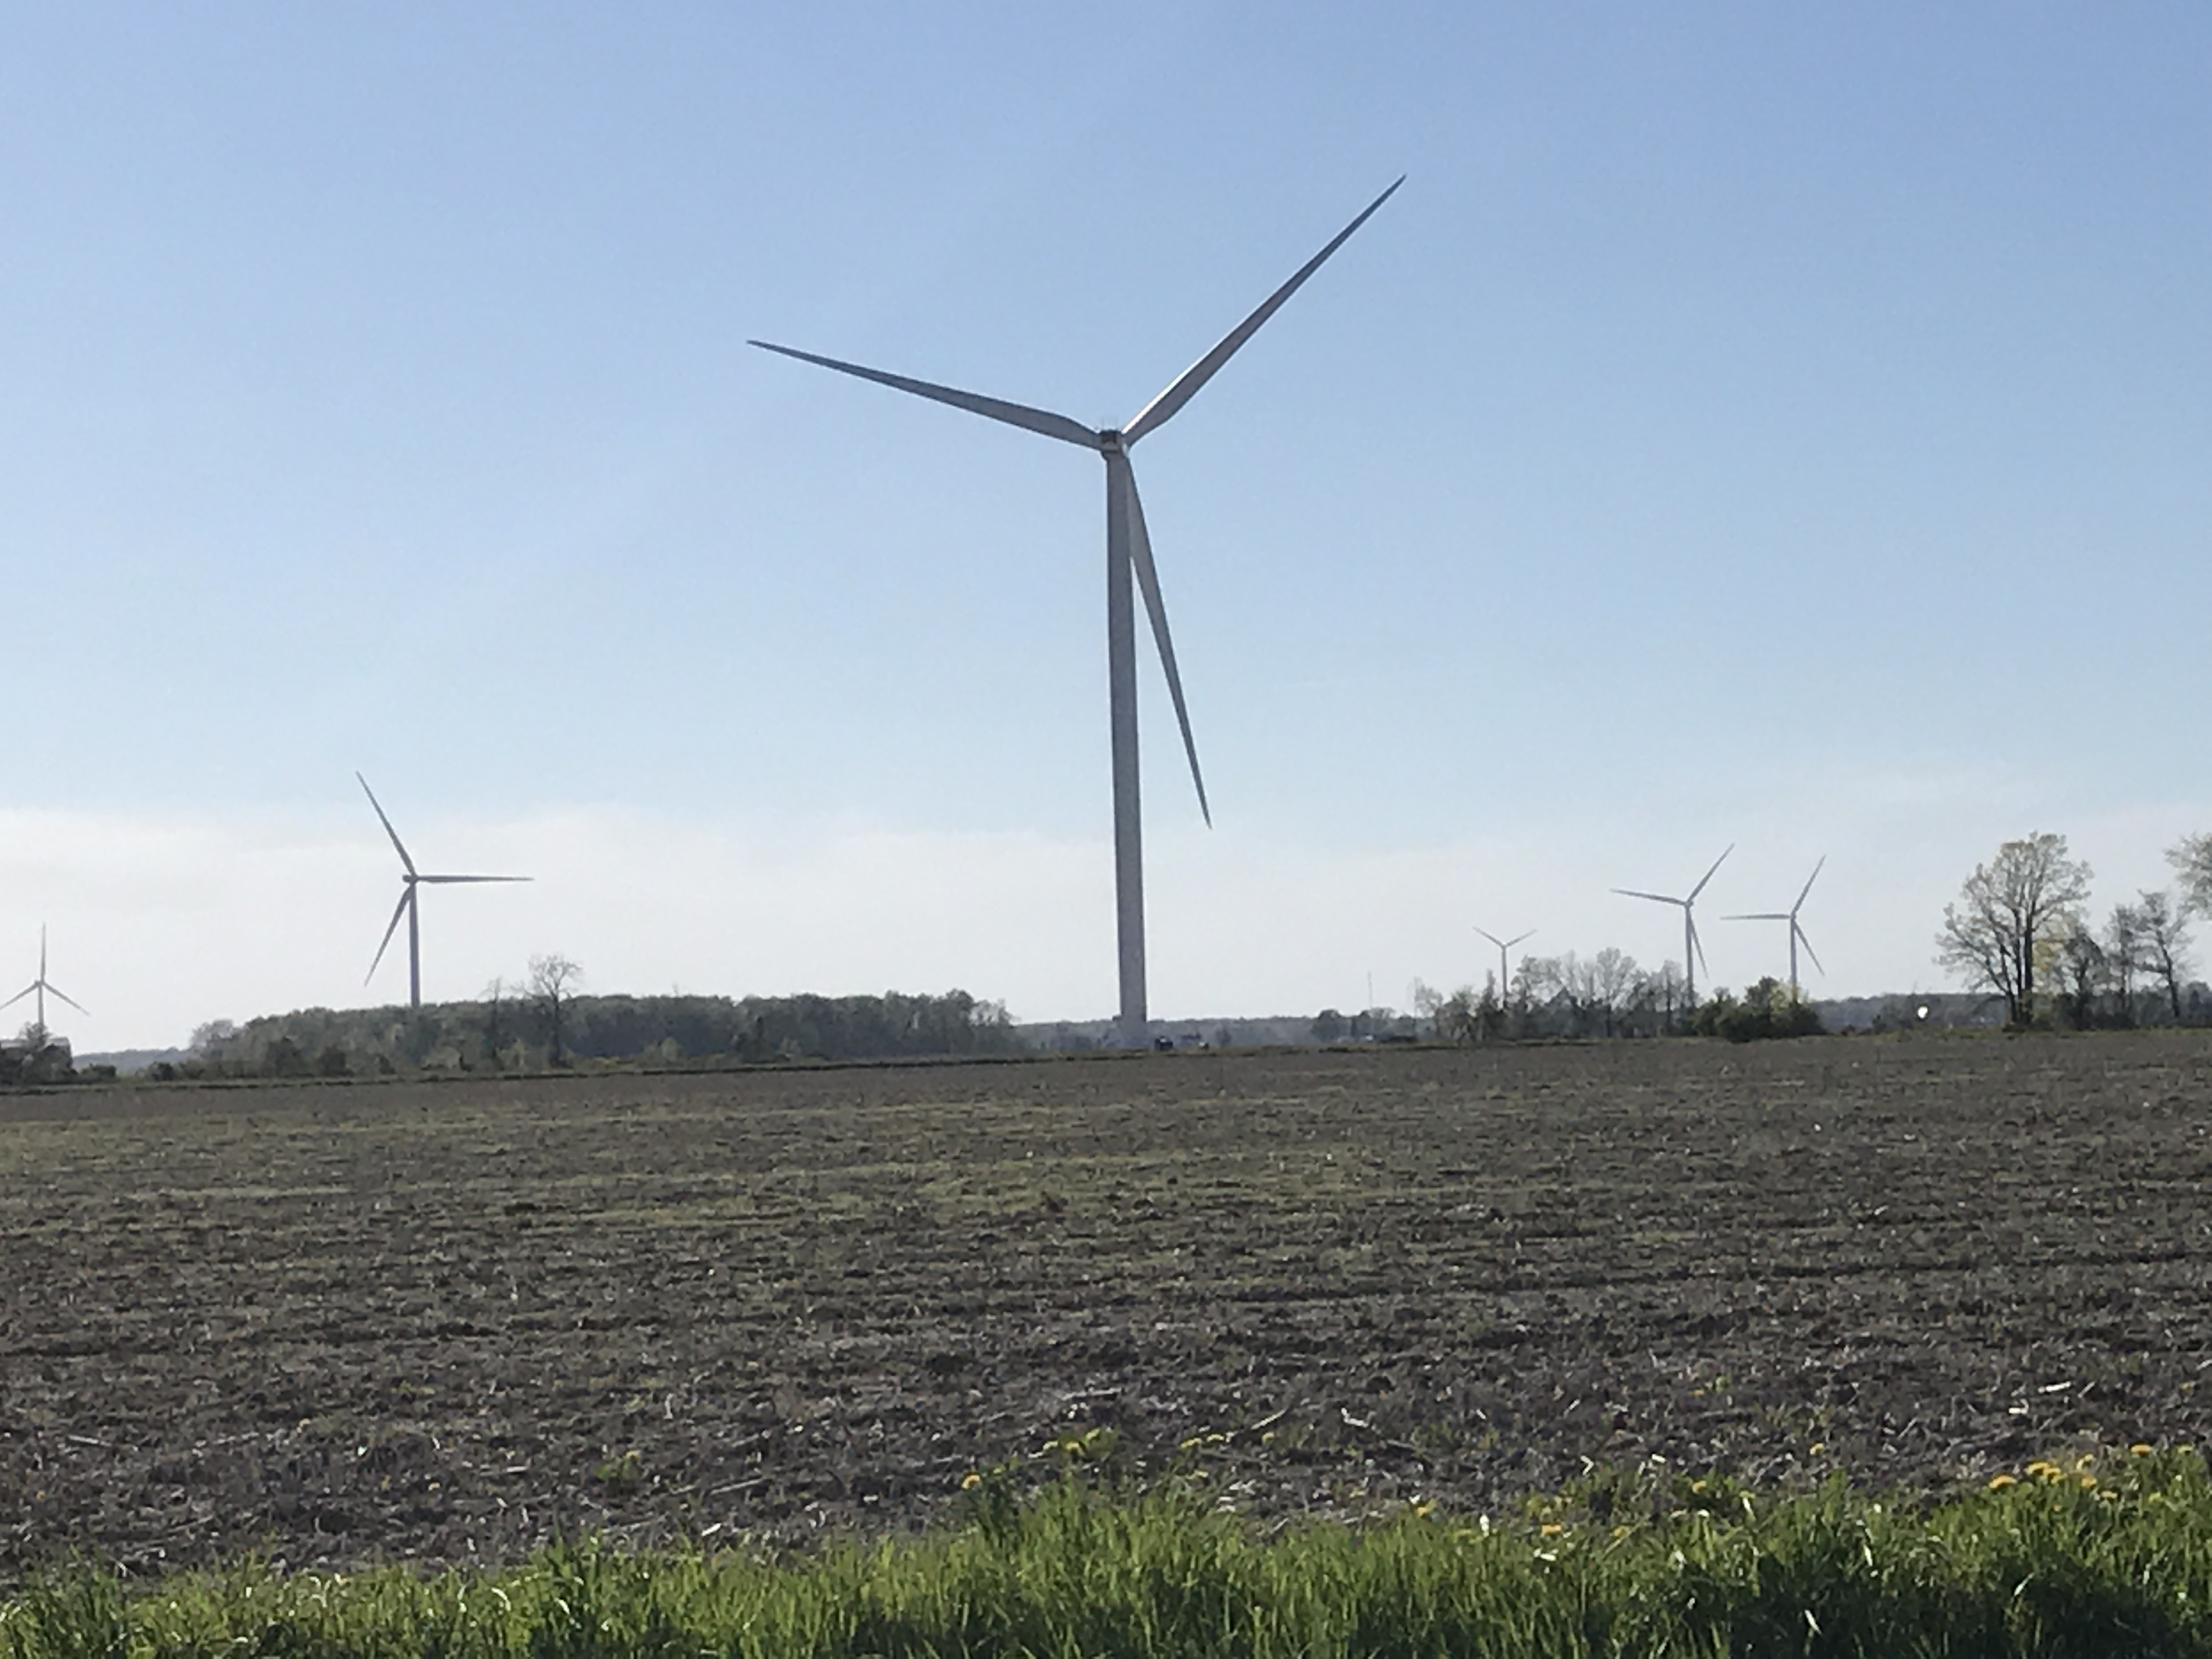 Isabella County Closer to Allowing 200 or More Wind Turbines